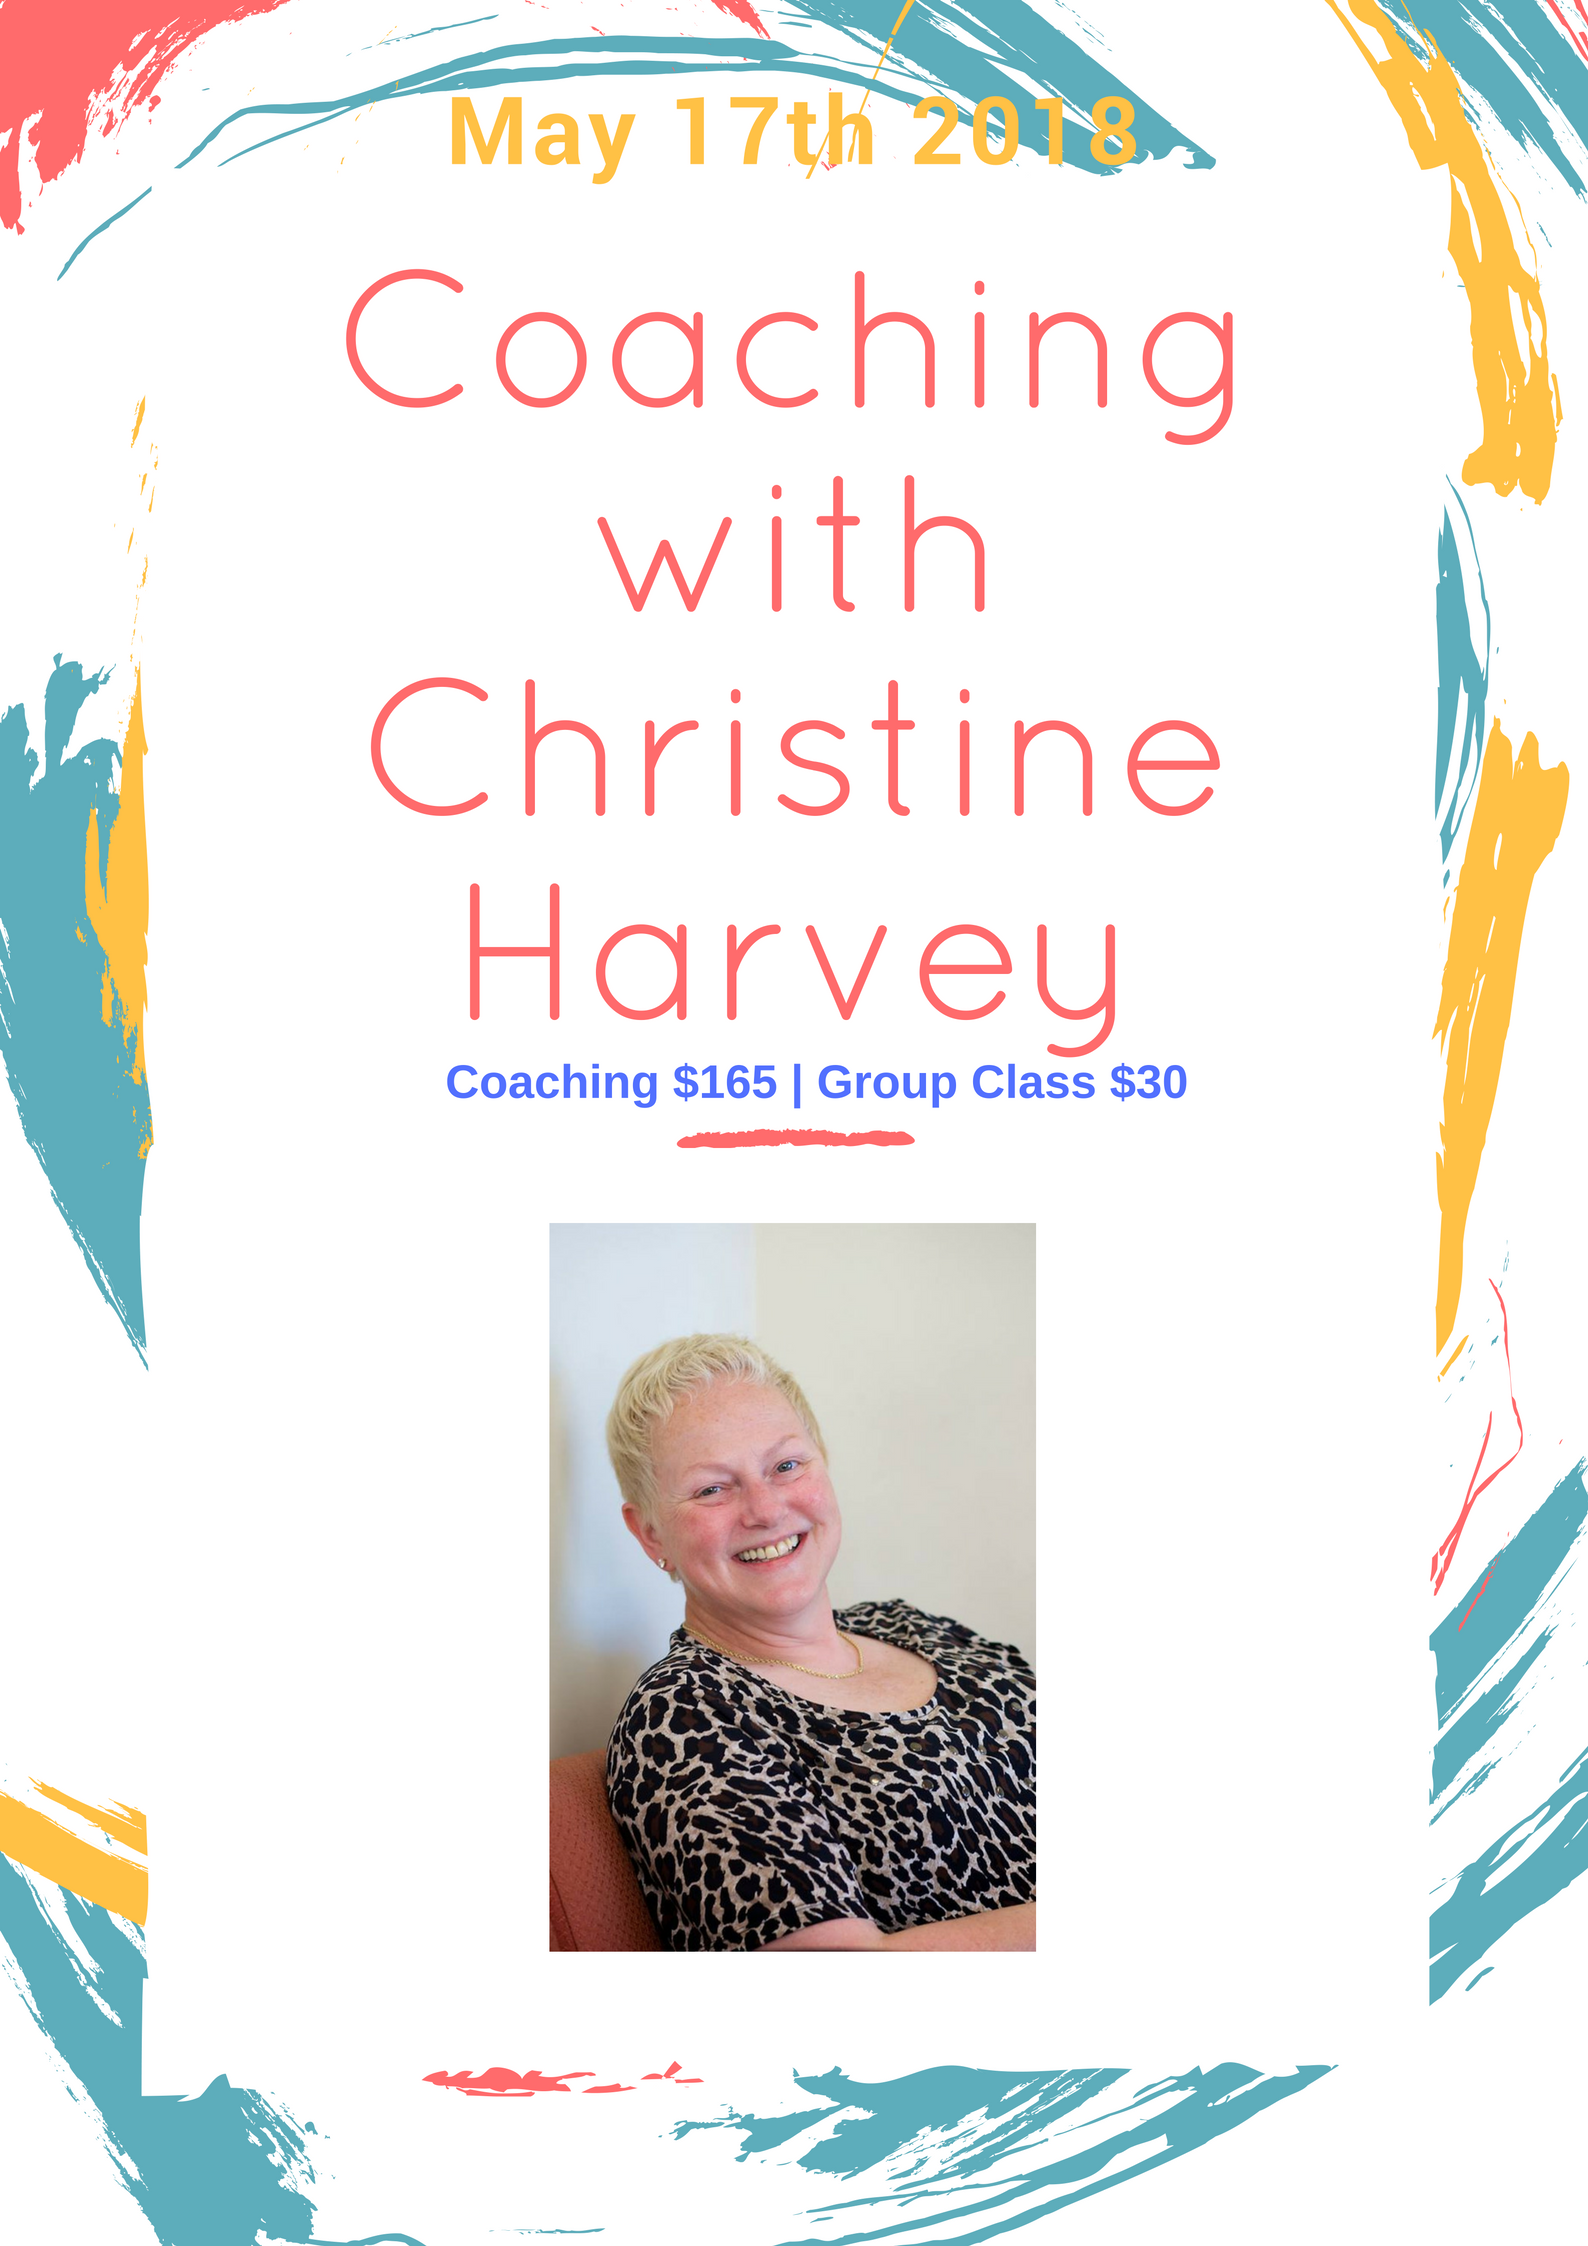 Coaching with Christine Harvey May 2018 Calendar.png